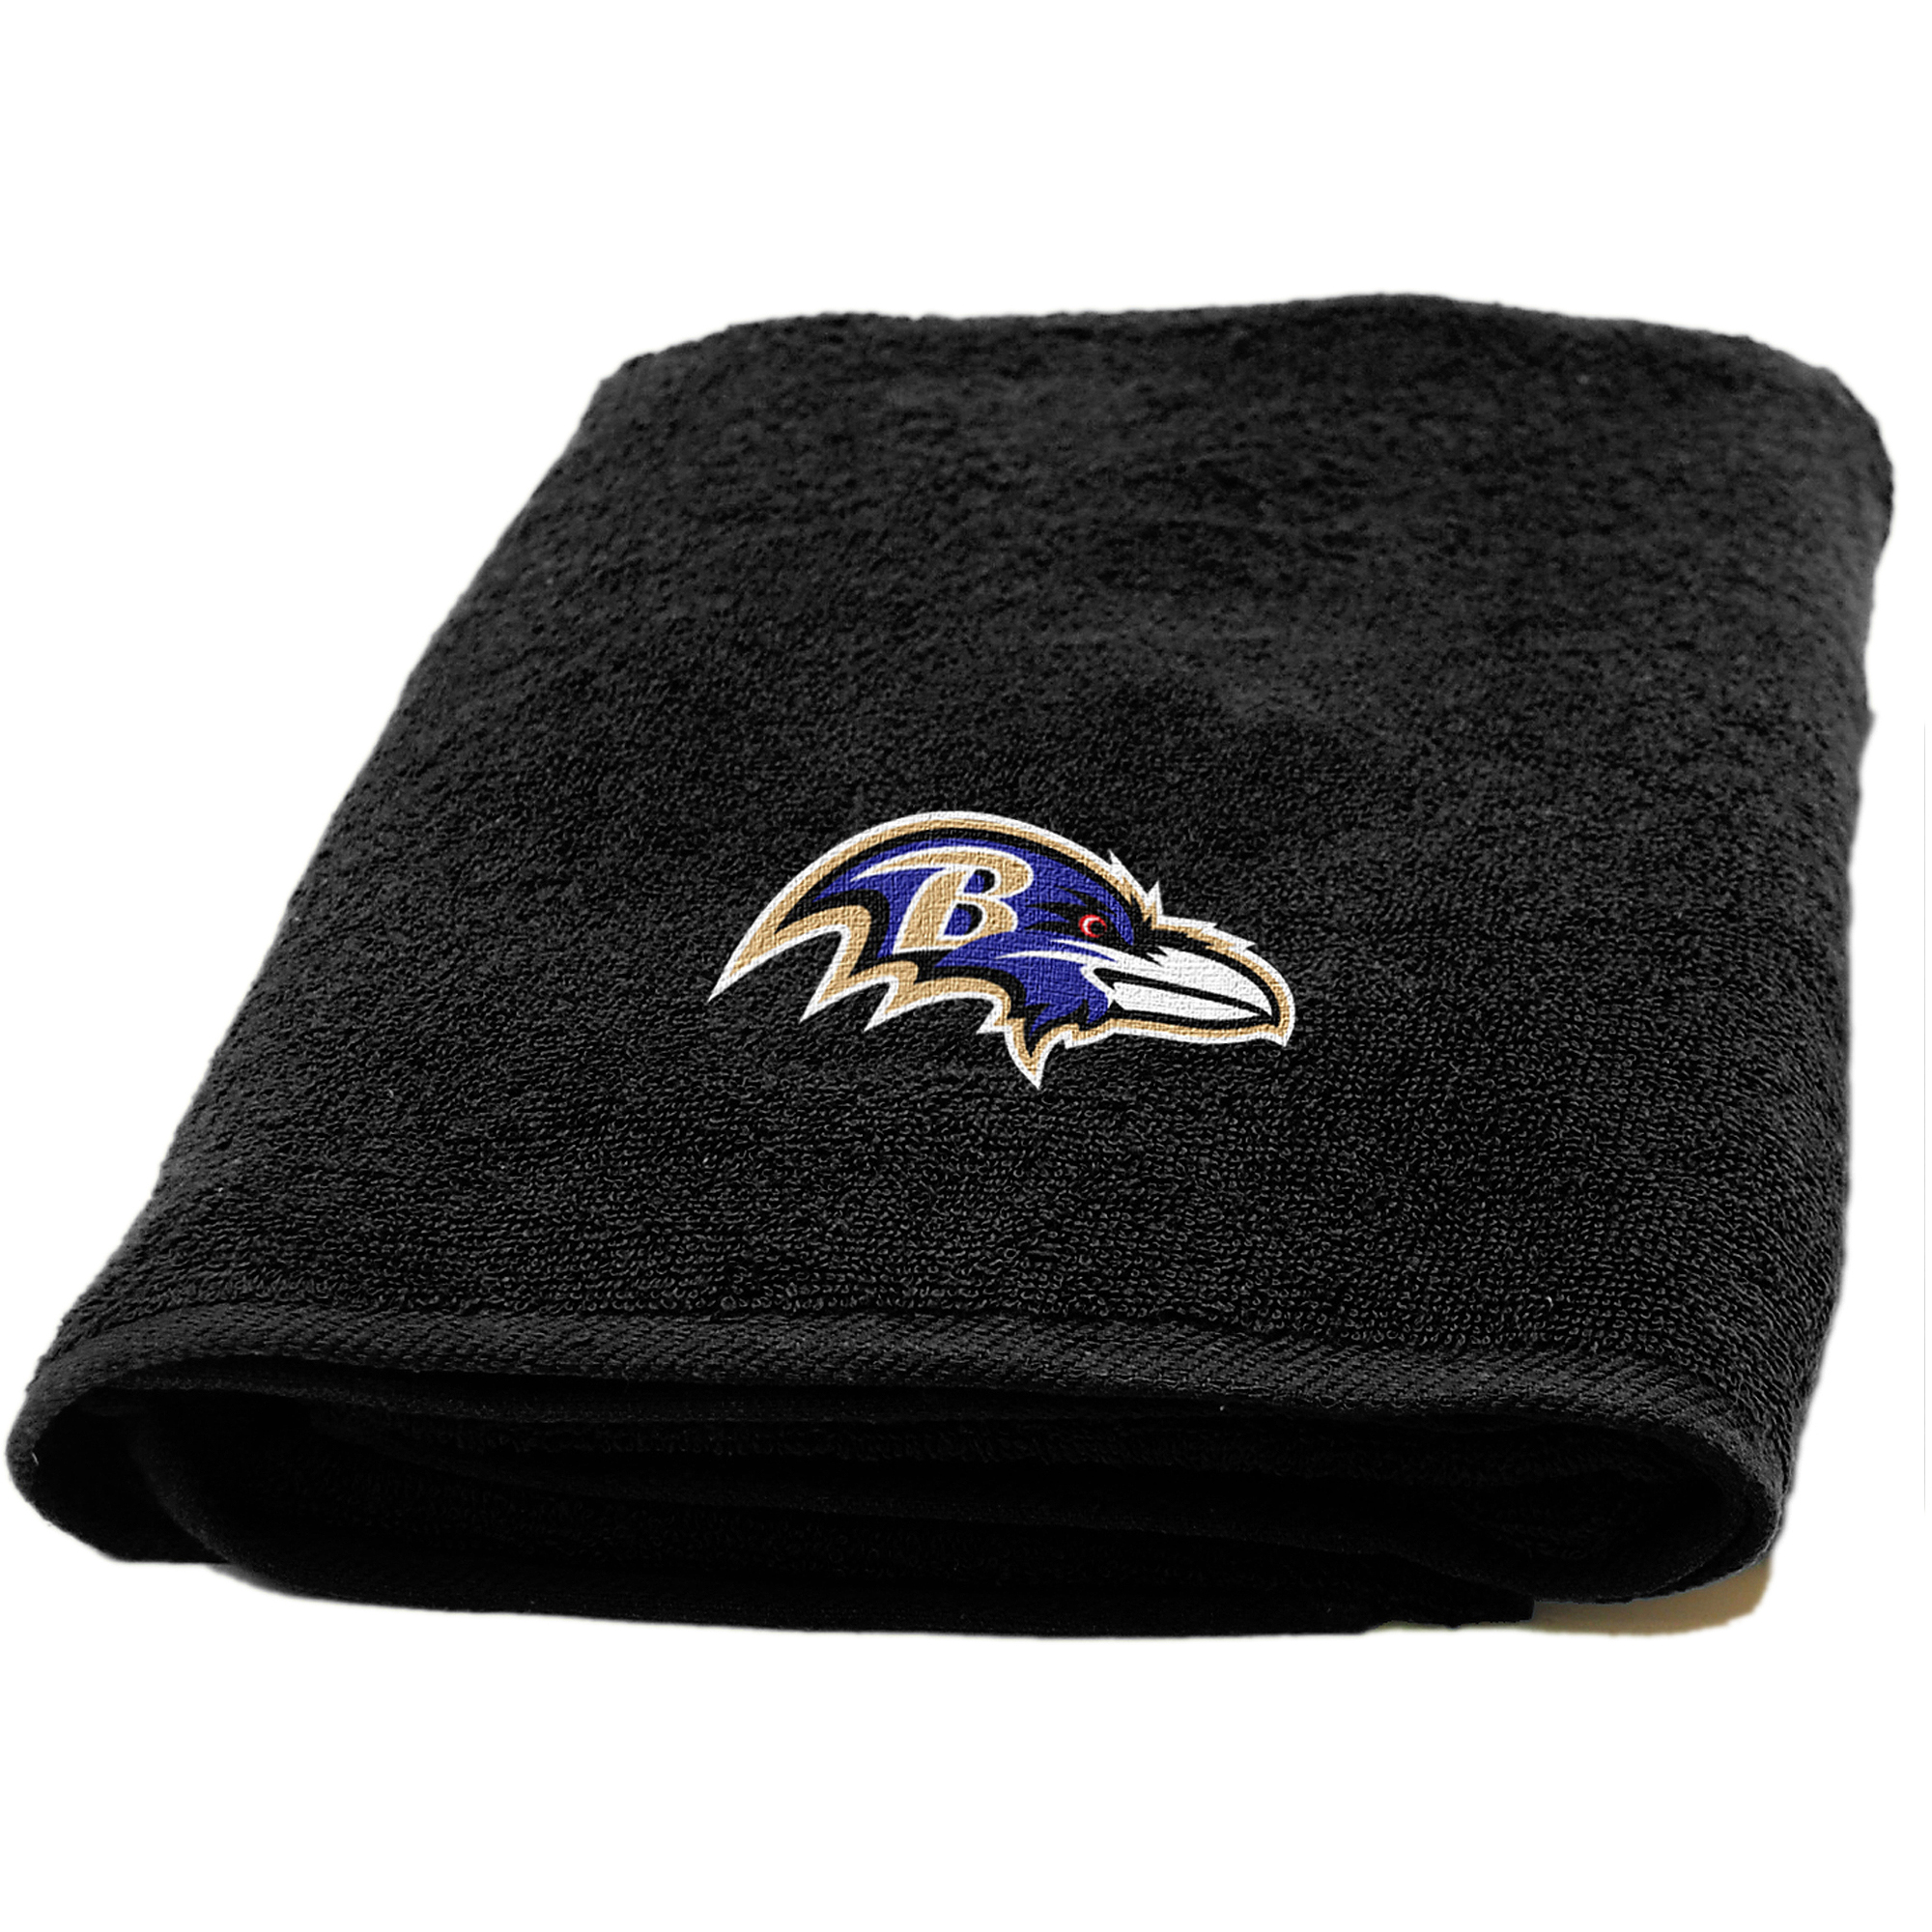 NFL Baltimore Ravens Decorative Bath Collection Bath Towel